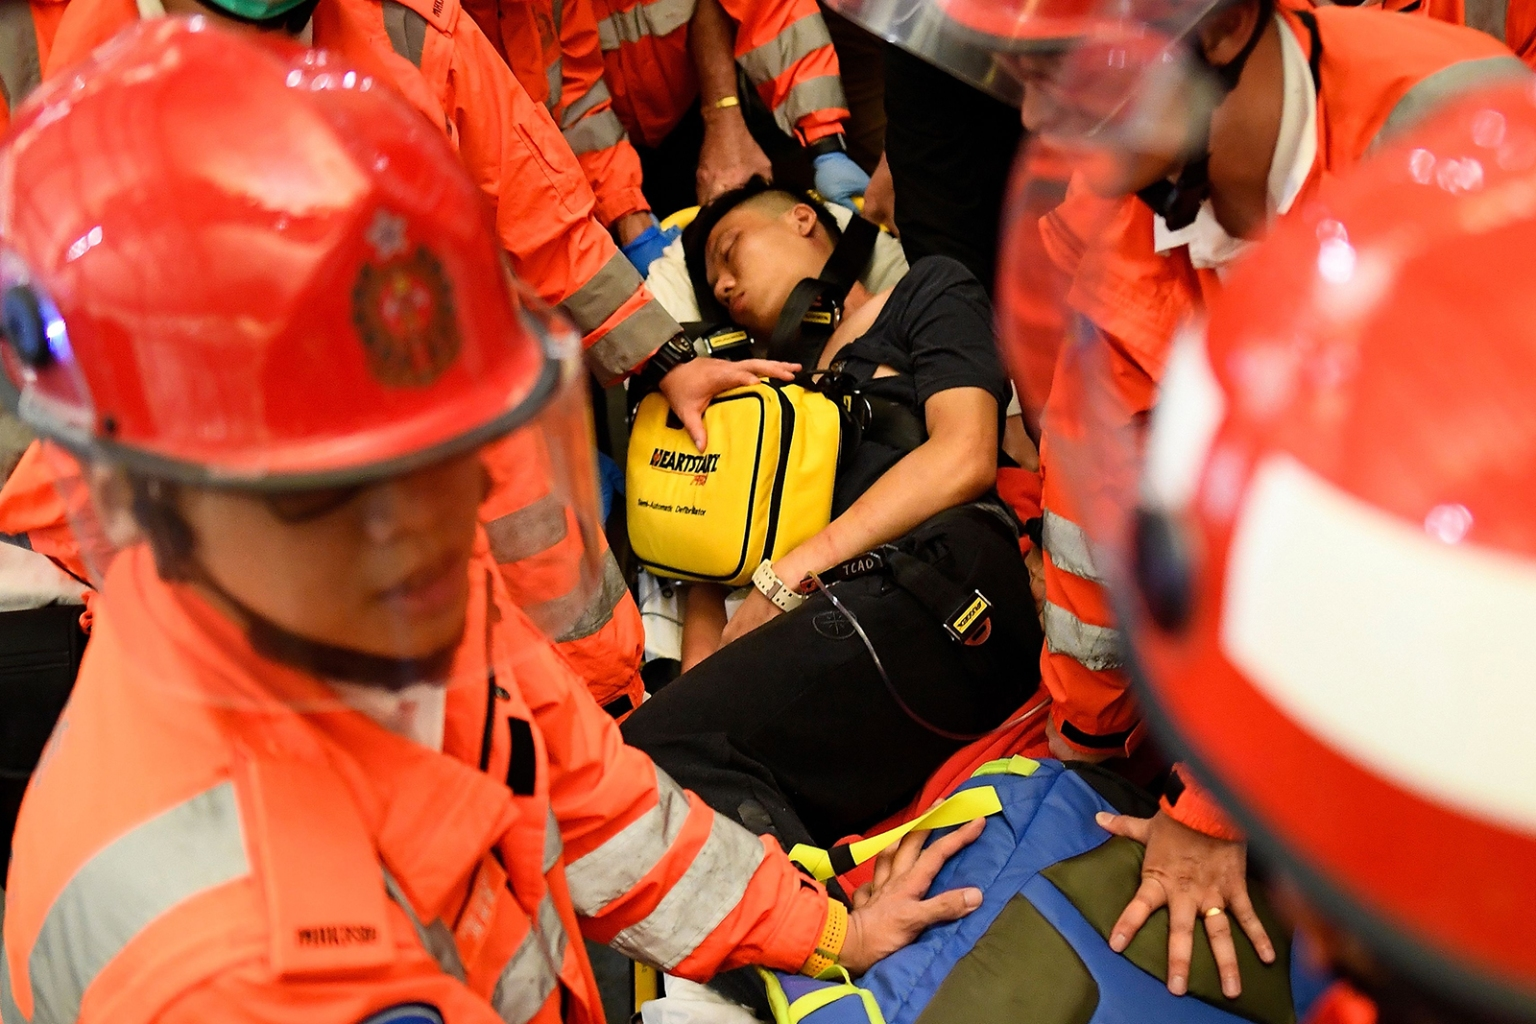 An injured man, suspected by protestors of being an undercover police officer, is taken away by paramedics at Hong Kong's International Airport, on Aug. 13. MANAN VATSYAYANA/AFP/Getty Images